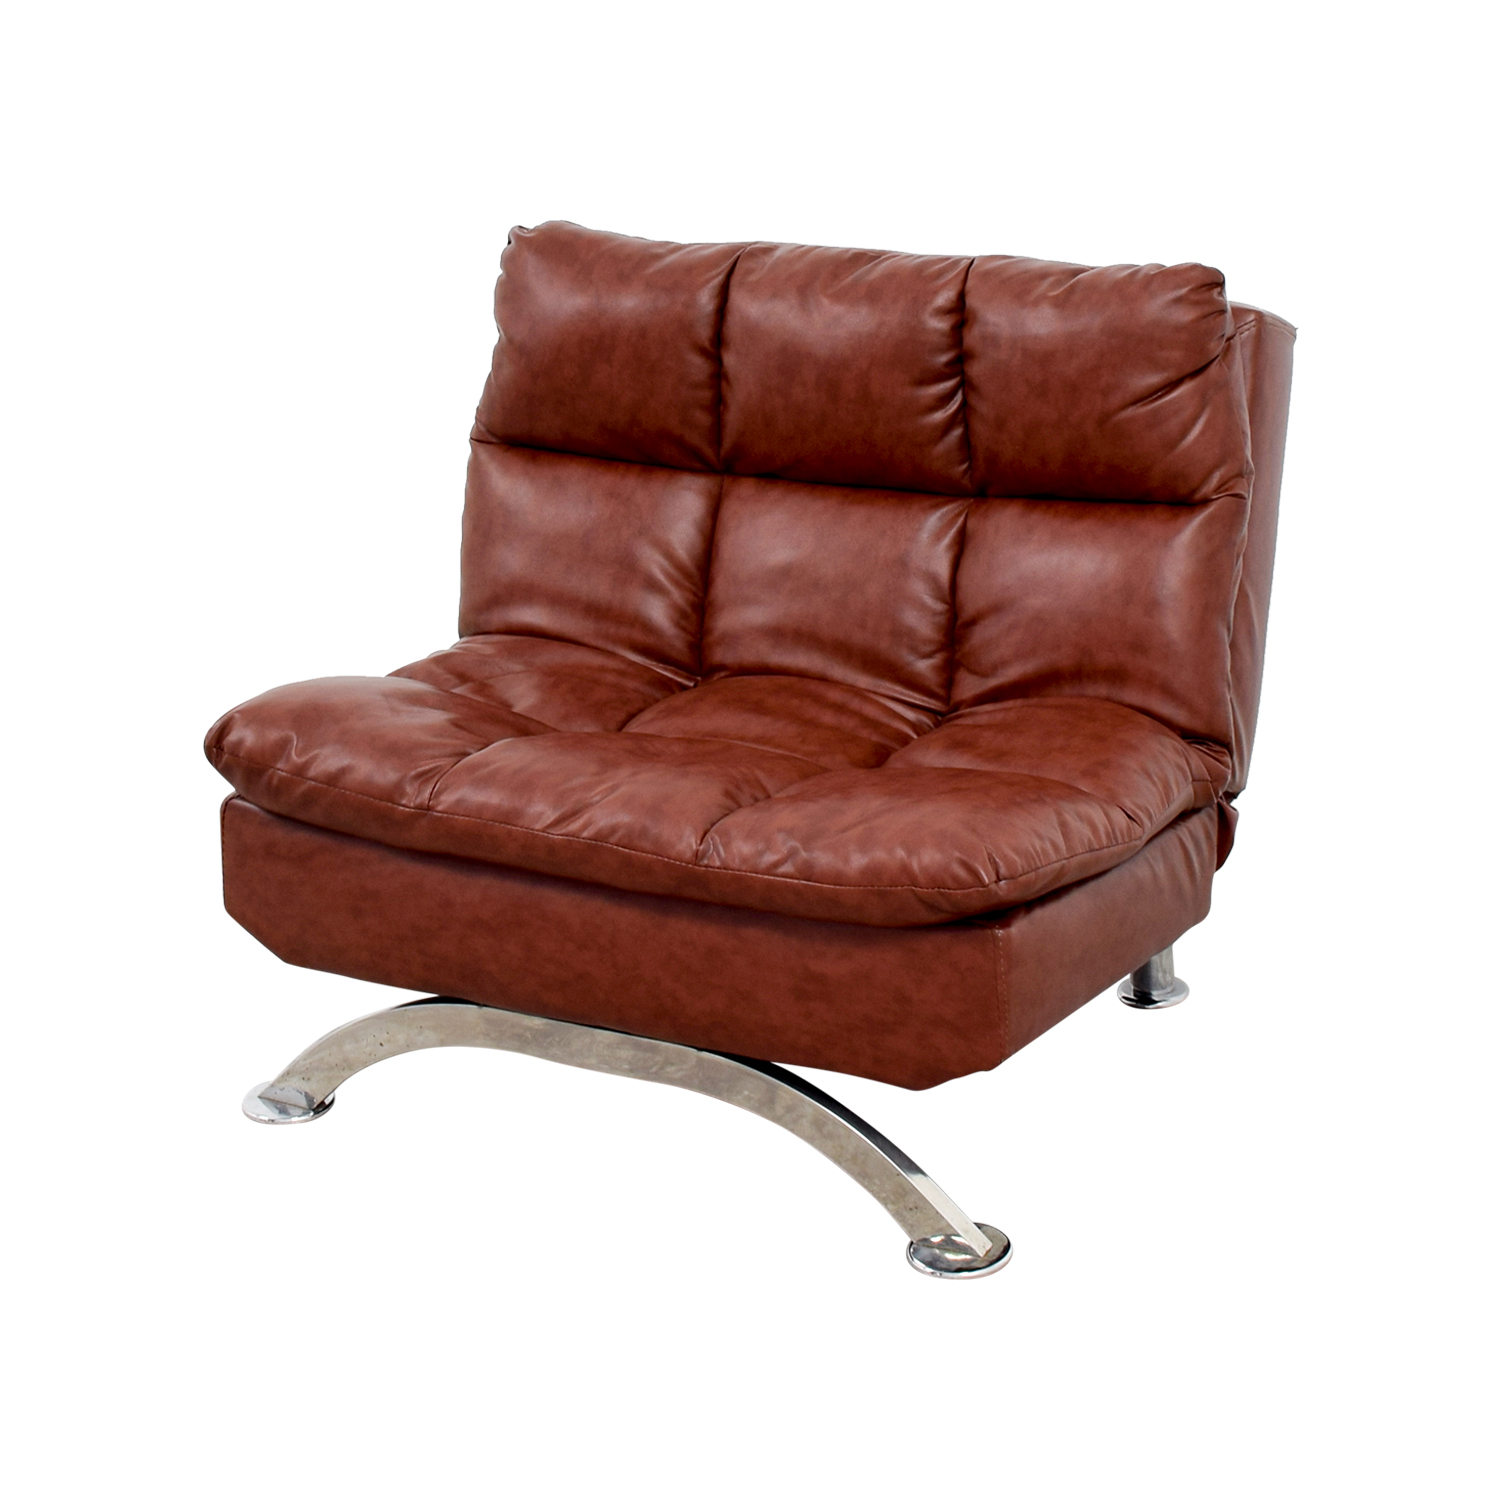 love making chair images star trek captains 2 56 off wayfair brown leather tufted